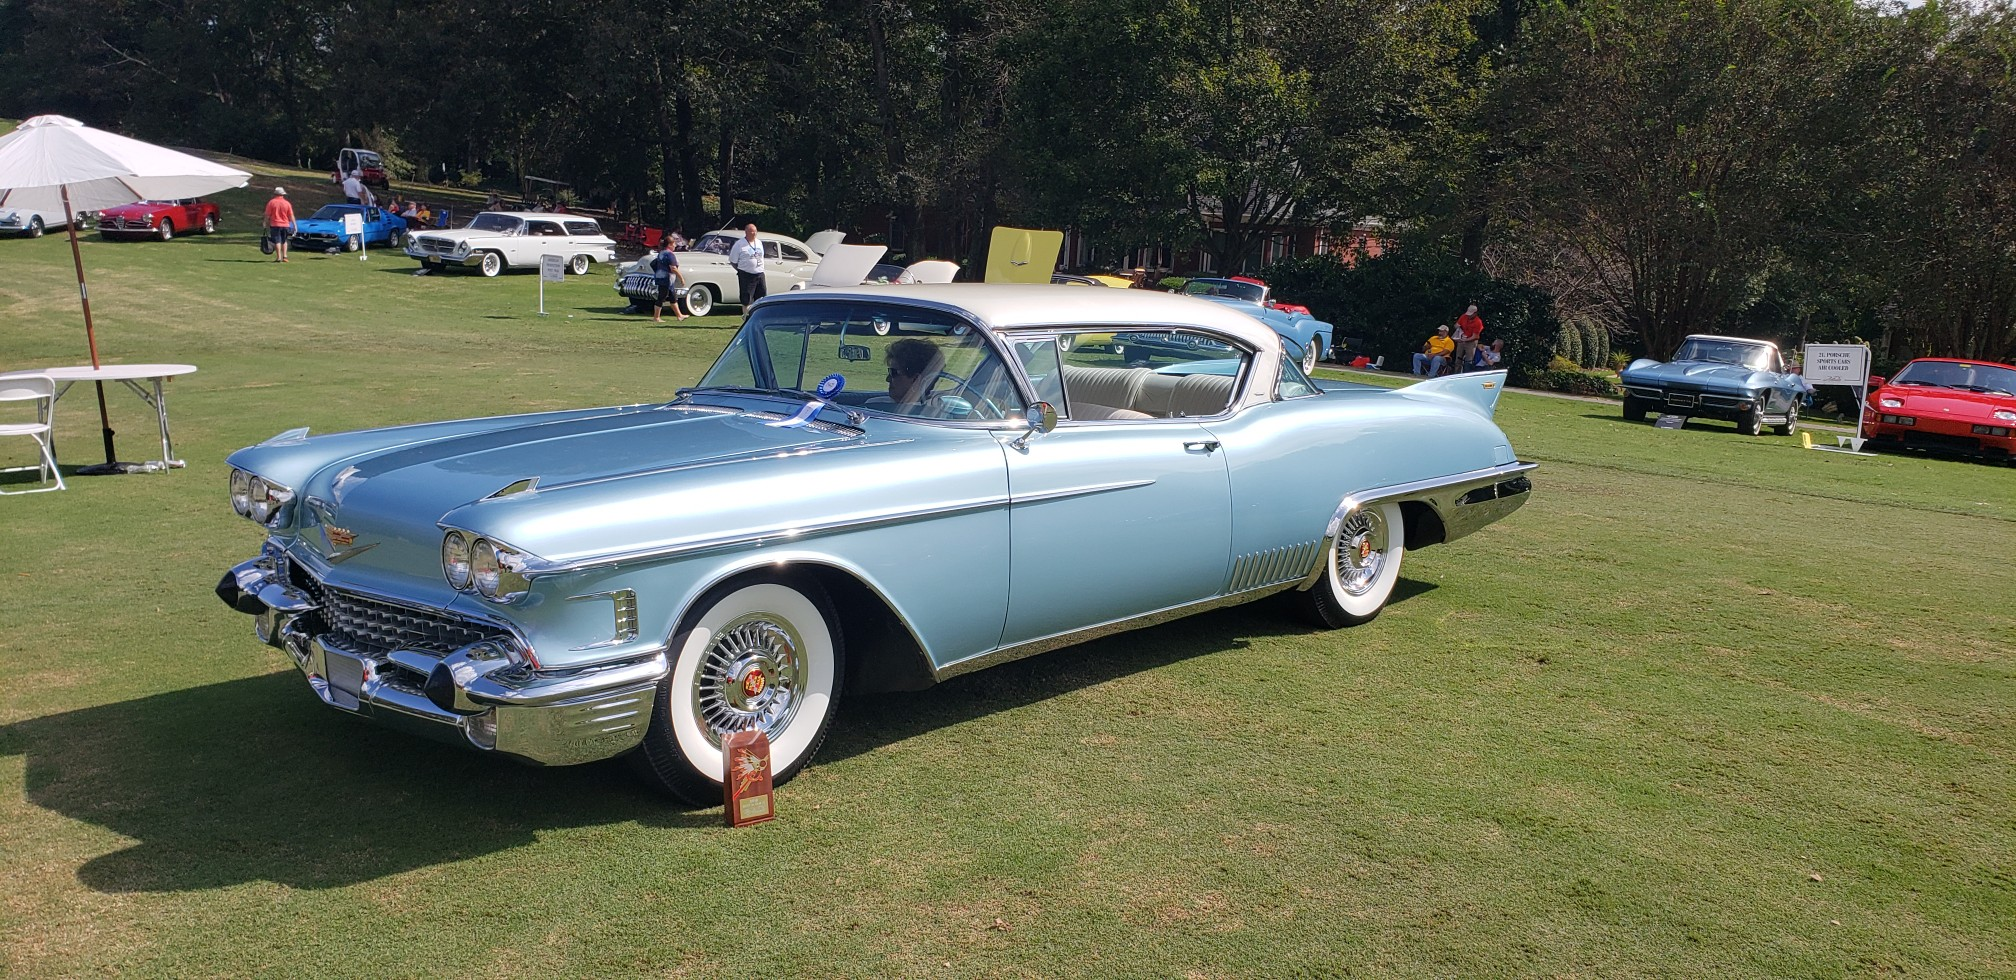 This 1958 Cadillac won 2018 Best in Class at the Atlanta Concours d'Elegance.